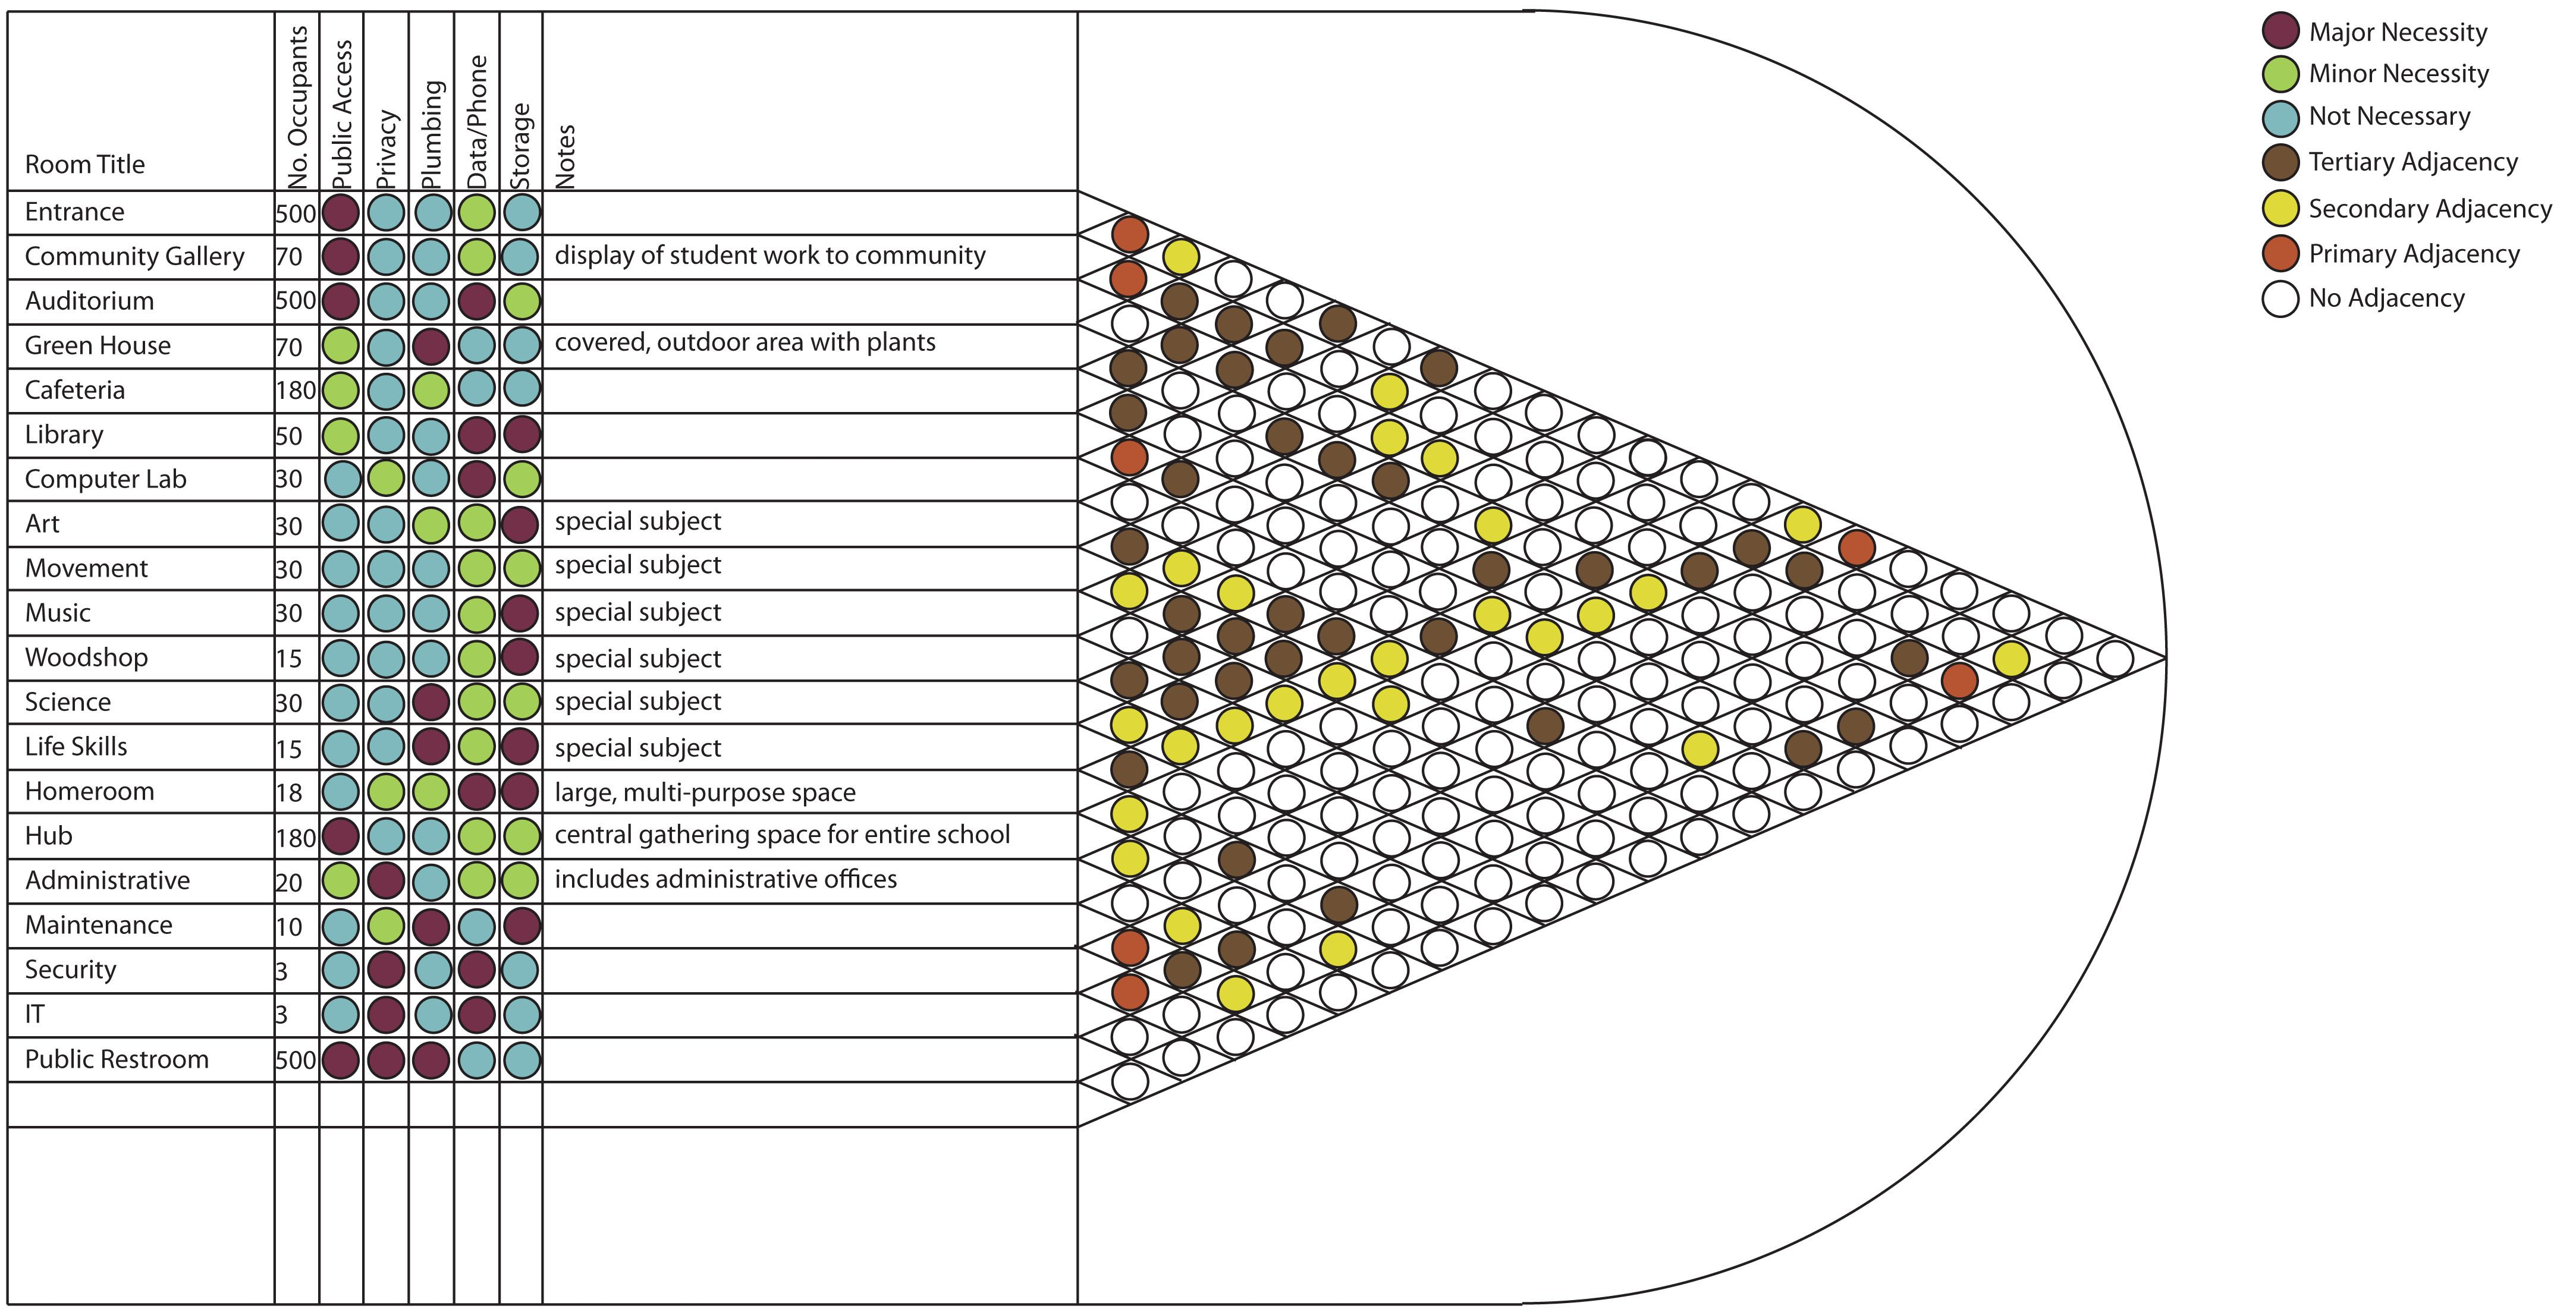 Environmental And Adjacency Matrix Dot Key Project Management Tools Design Design Working